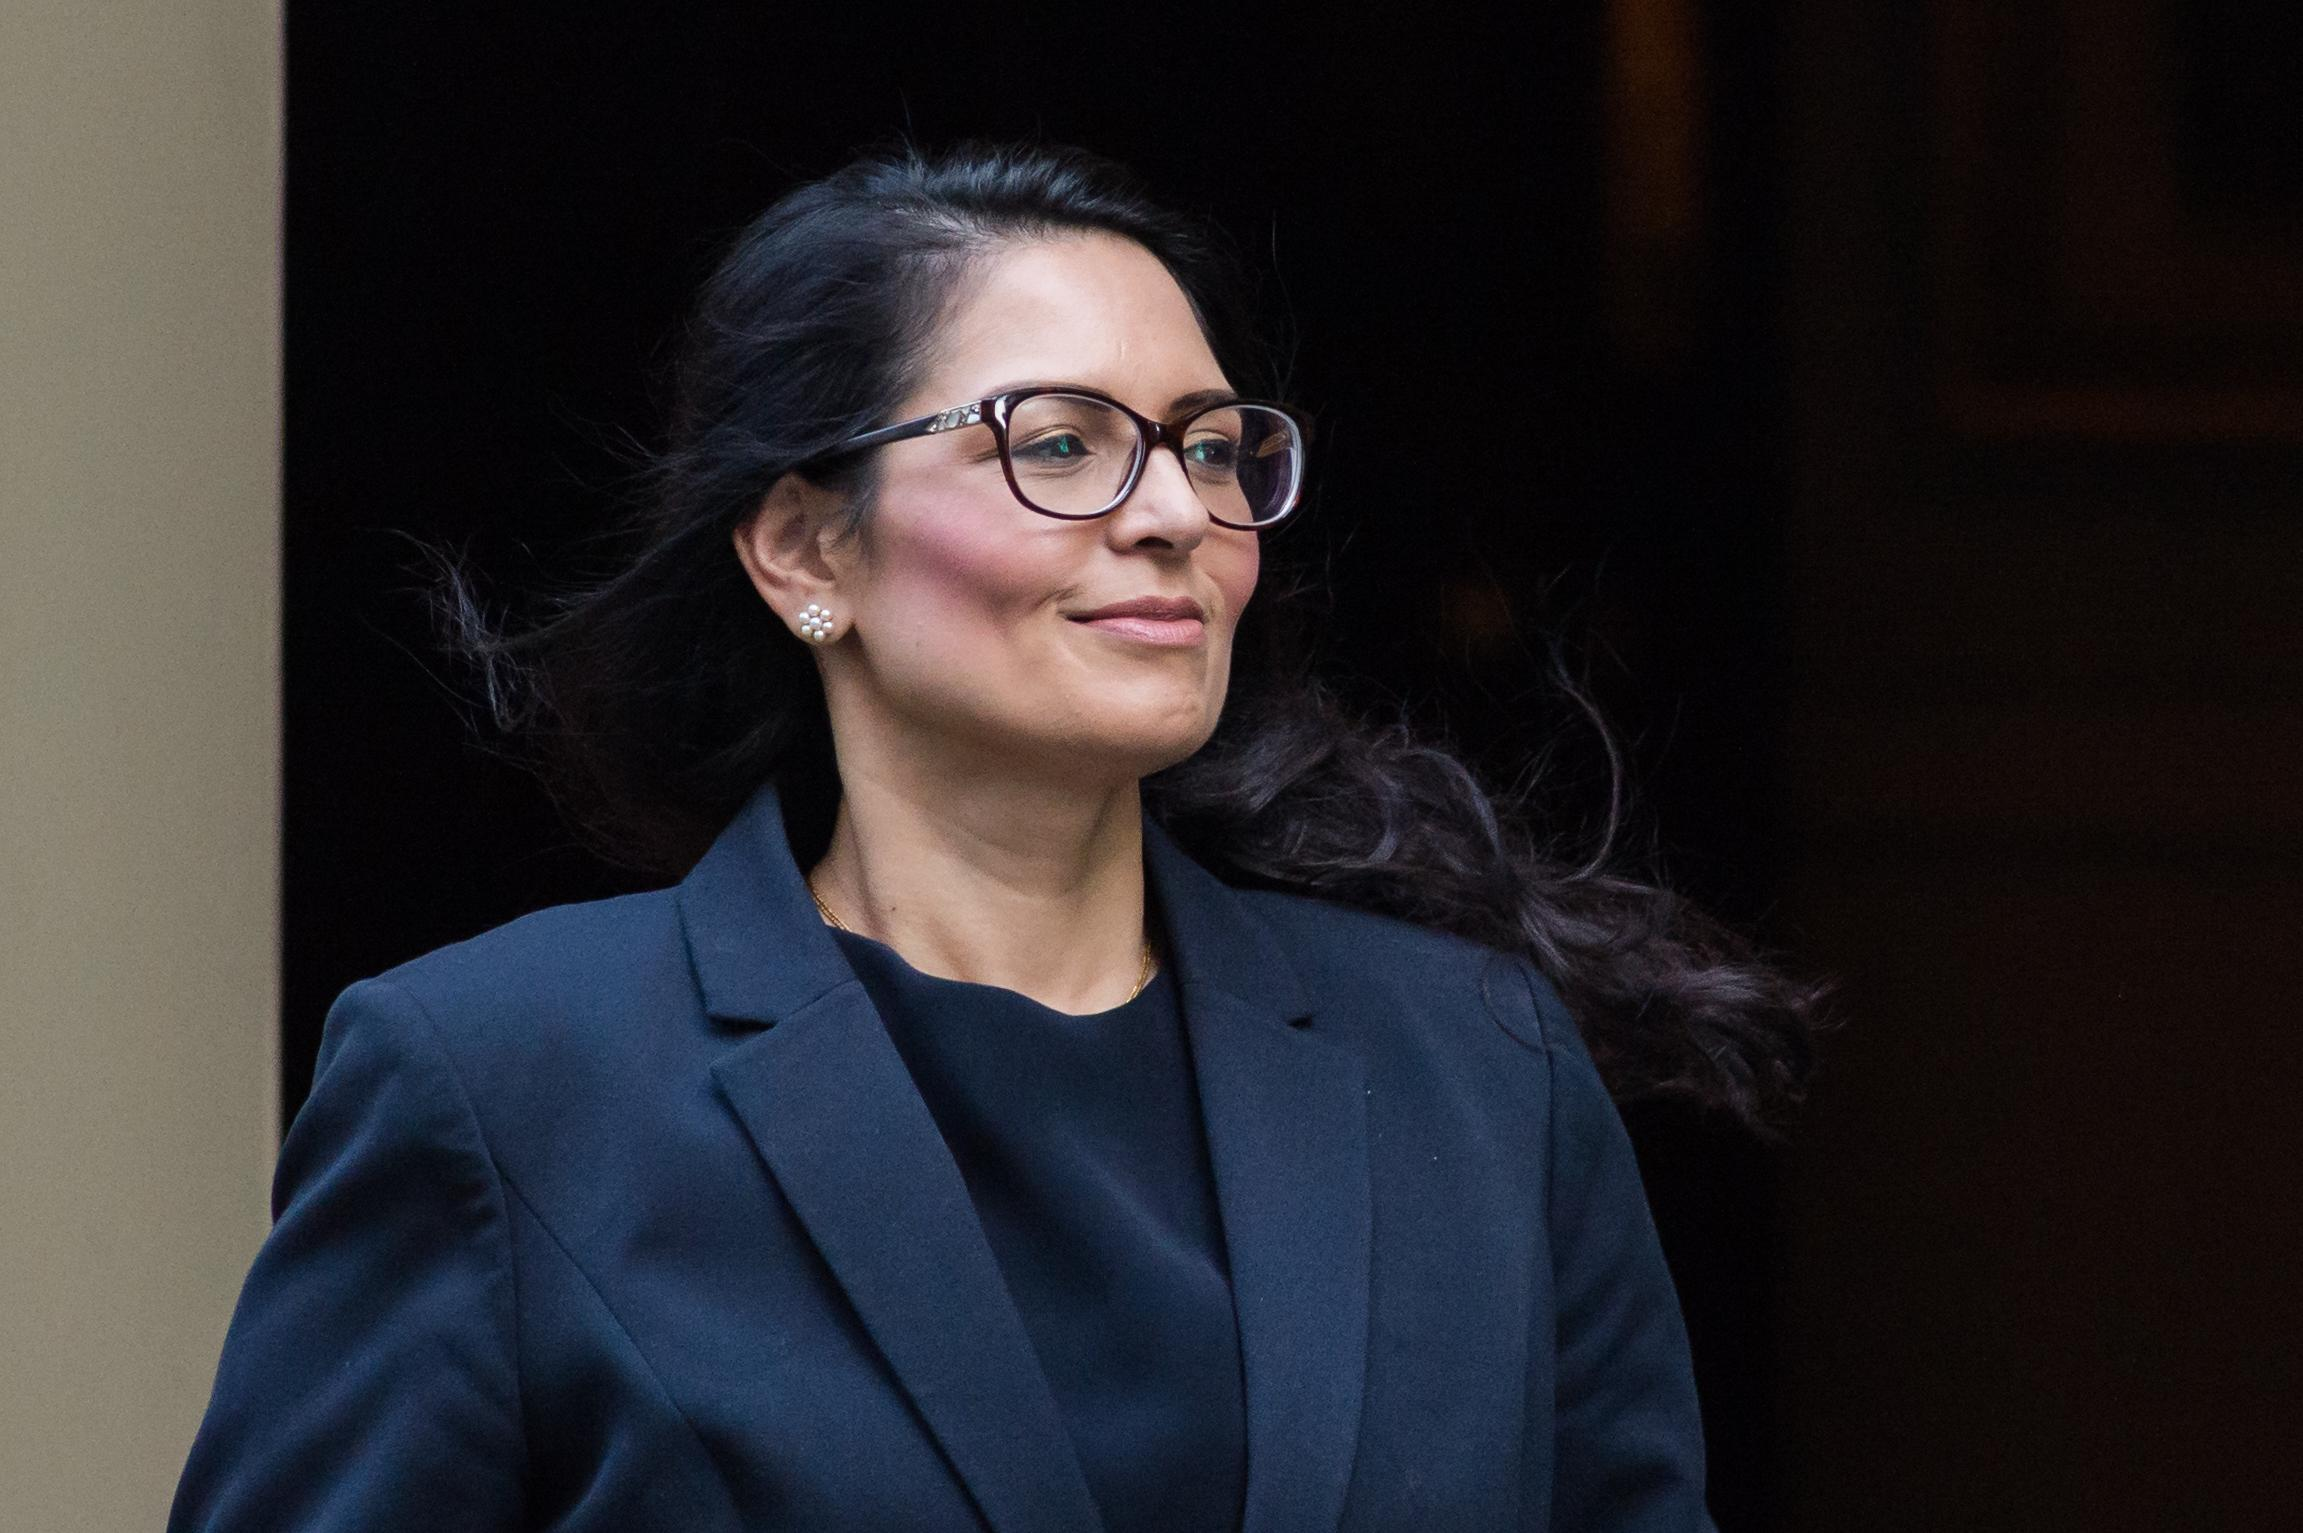 Secretary of State for the Home Department Priti Patel leaves 10 Downing Street in central London after attending the weekly Cabinet meeting on 22 October, 2019 in London, England. MPs in the House of Commons debate and vote today on the European Union Withdrawal Agreement bill, known as the second reading and on the programme motion of Boris Johnson's plan to complete the Brexit legislation within three days. (Photo by WIktor Szymanowicz/NurPhoto via Getty Images)